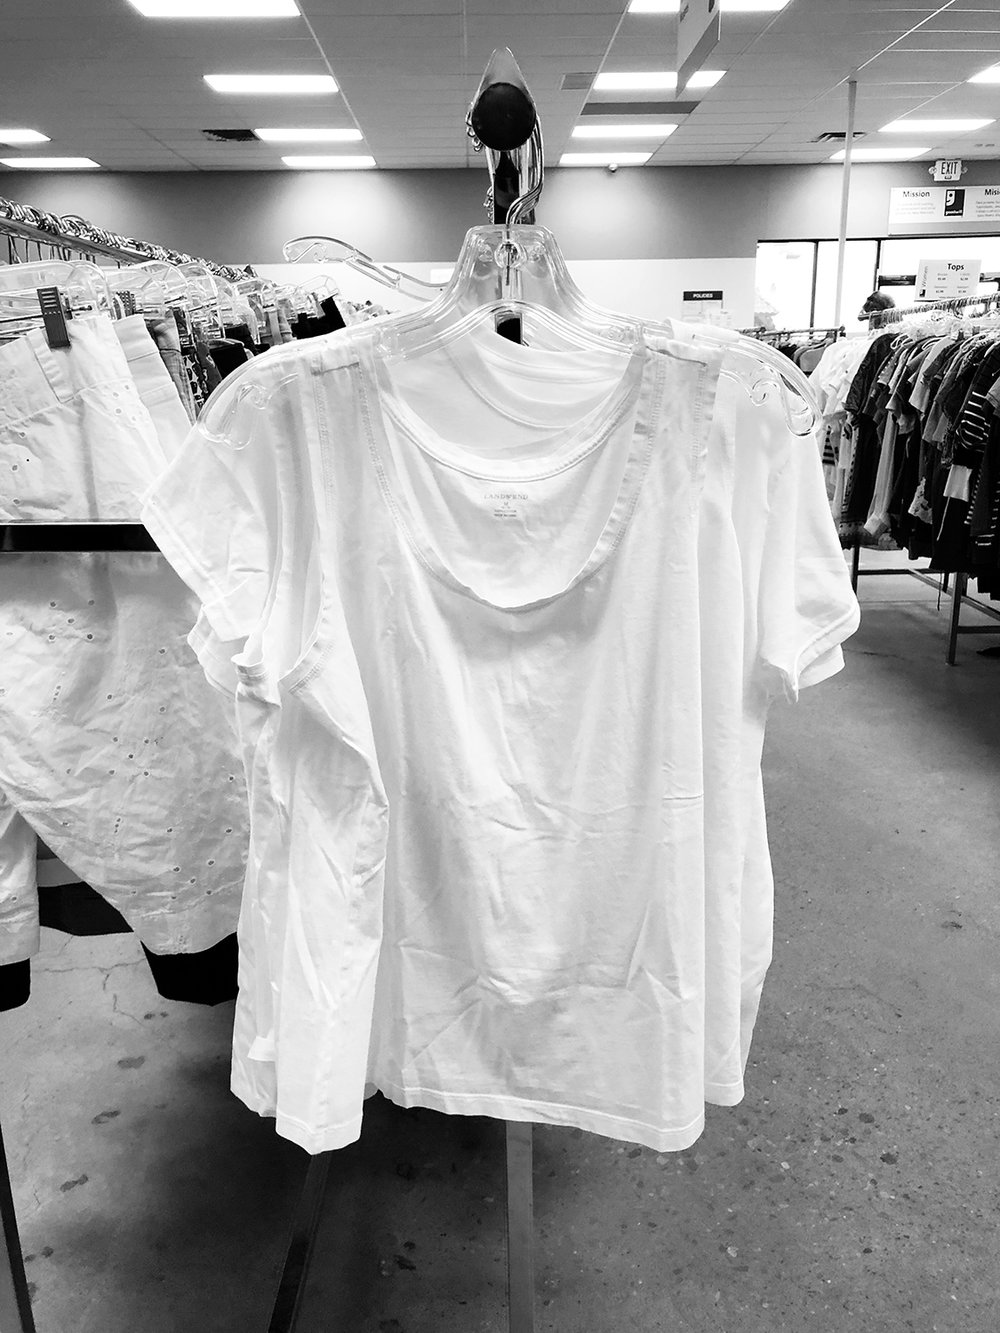 t shirt shopping at the goodwill